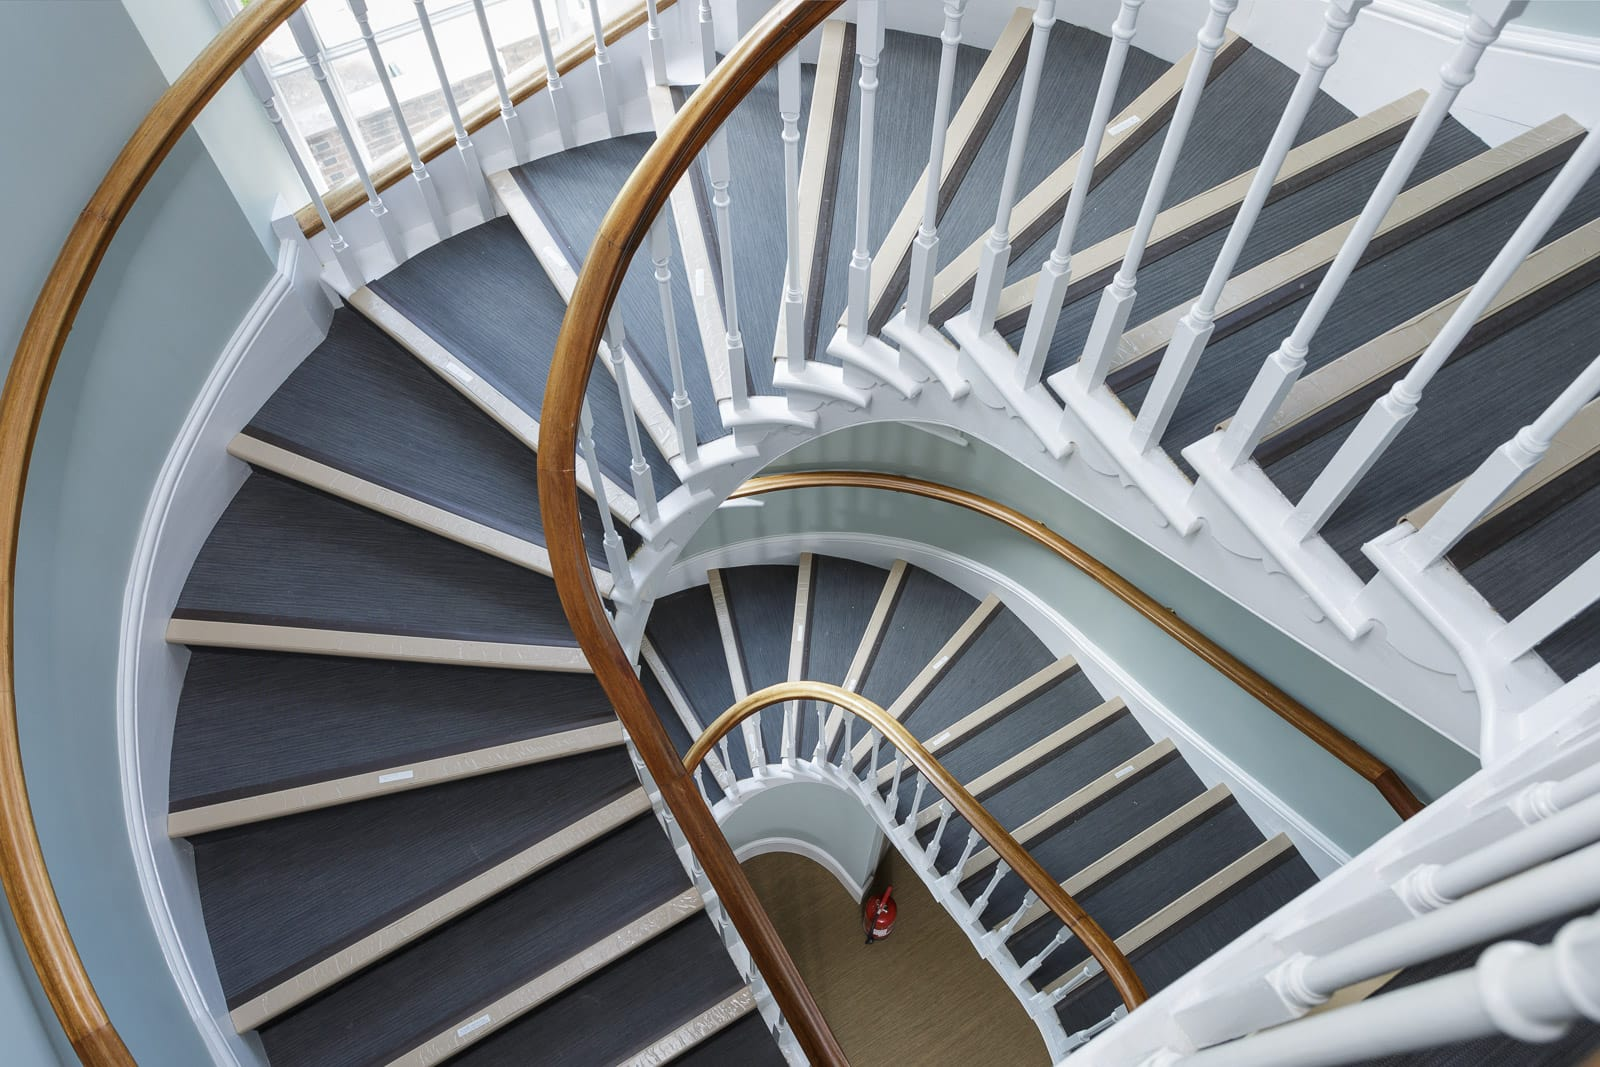 Looking down a museum stairwell with white woodwork and grey blue stair treads